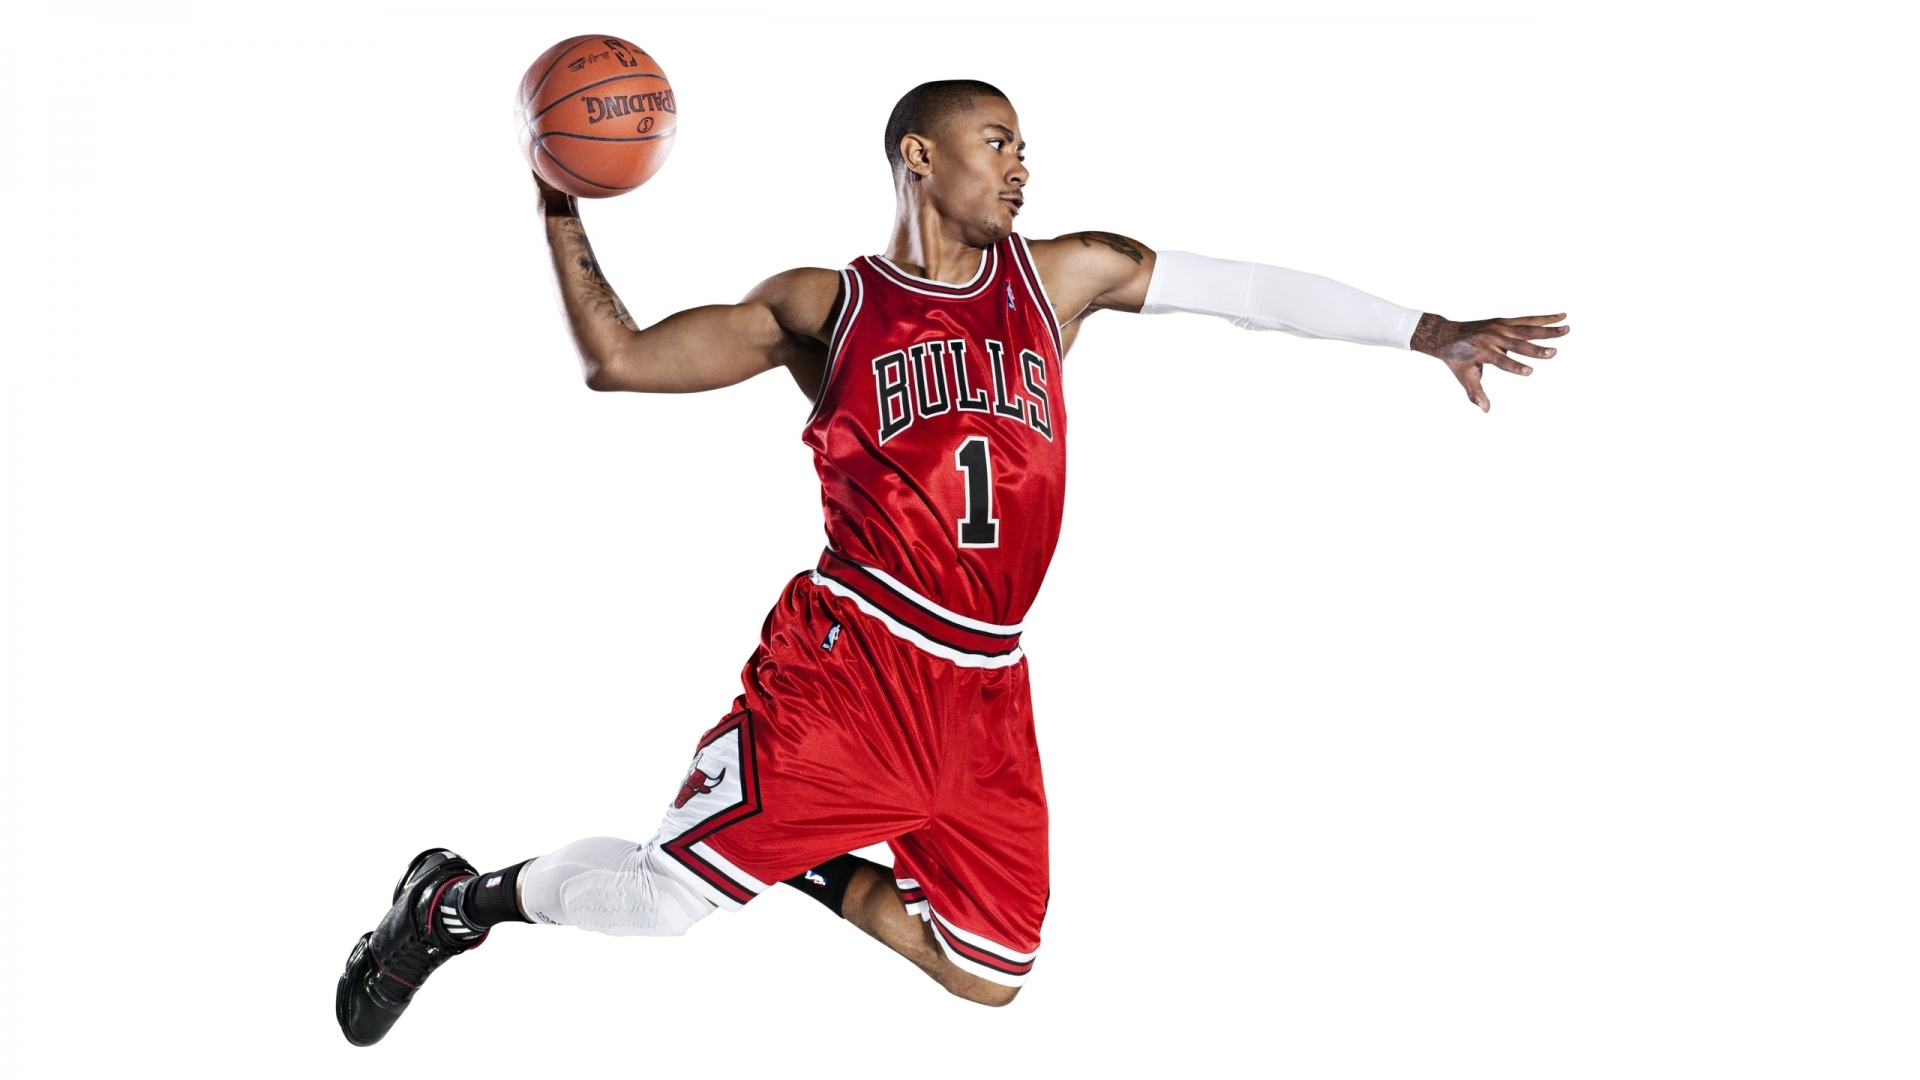 The American basketball player, Derrick Rose